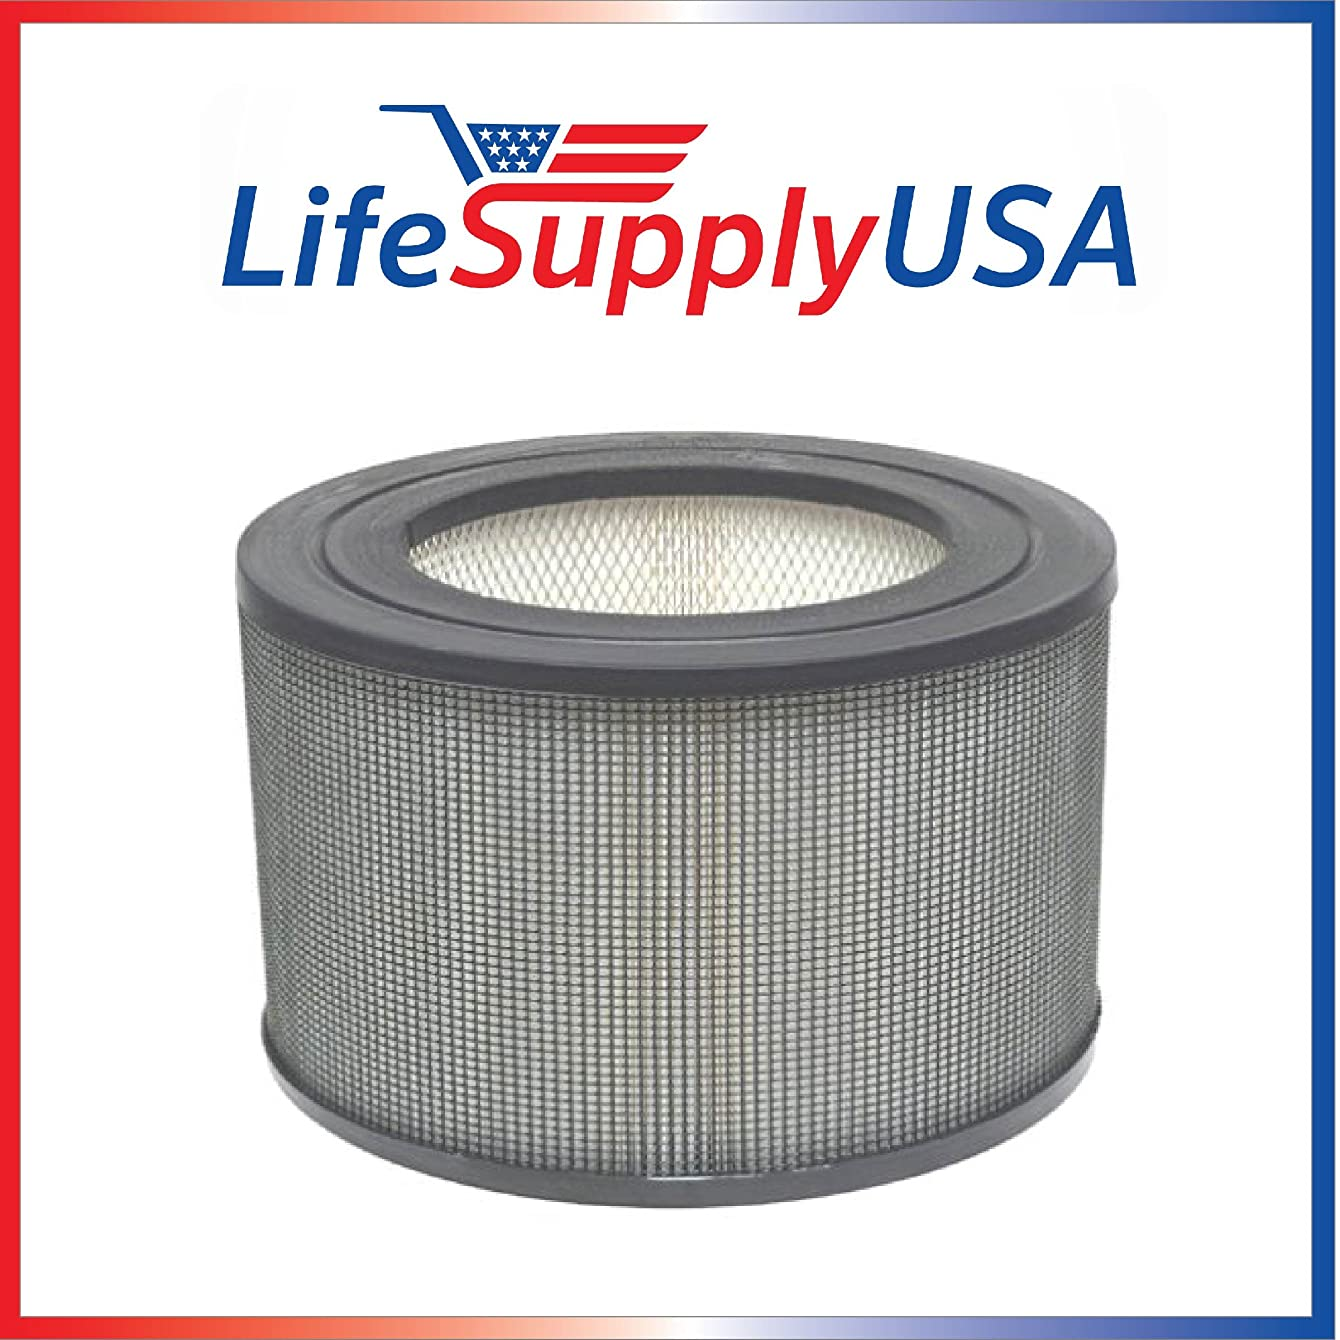 LifeSupplyUSA Replacement Filter for 21500/21600 Honeywell Air Purifier Replacement Filter